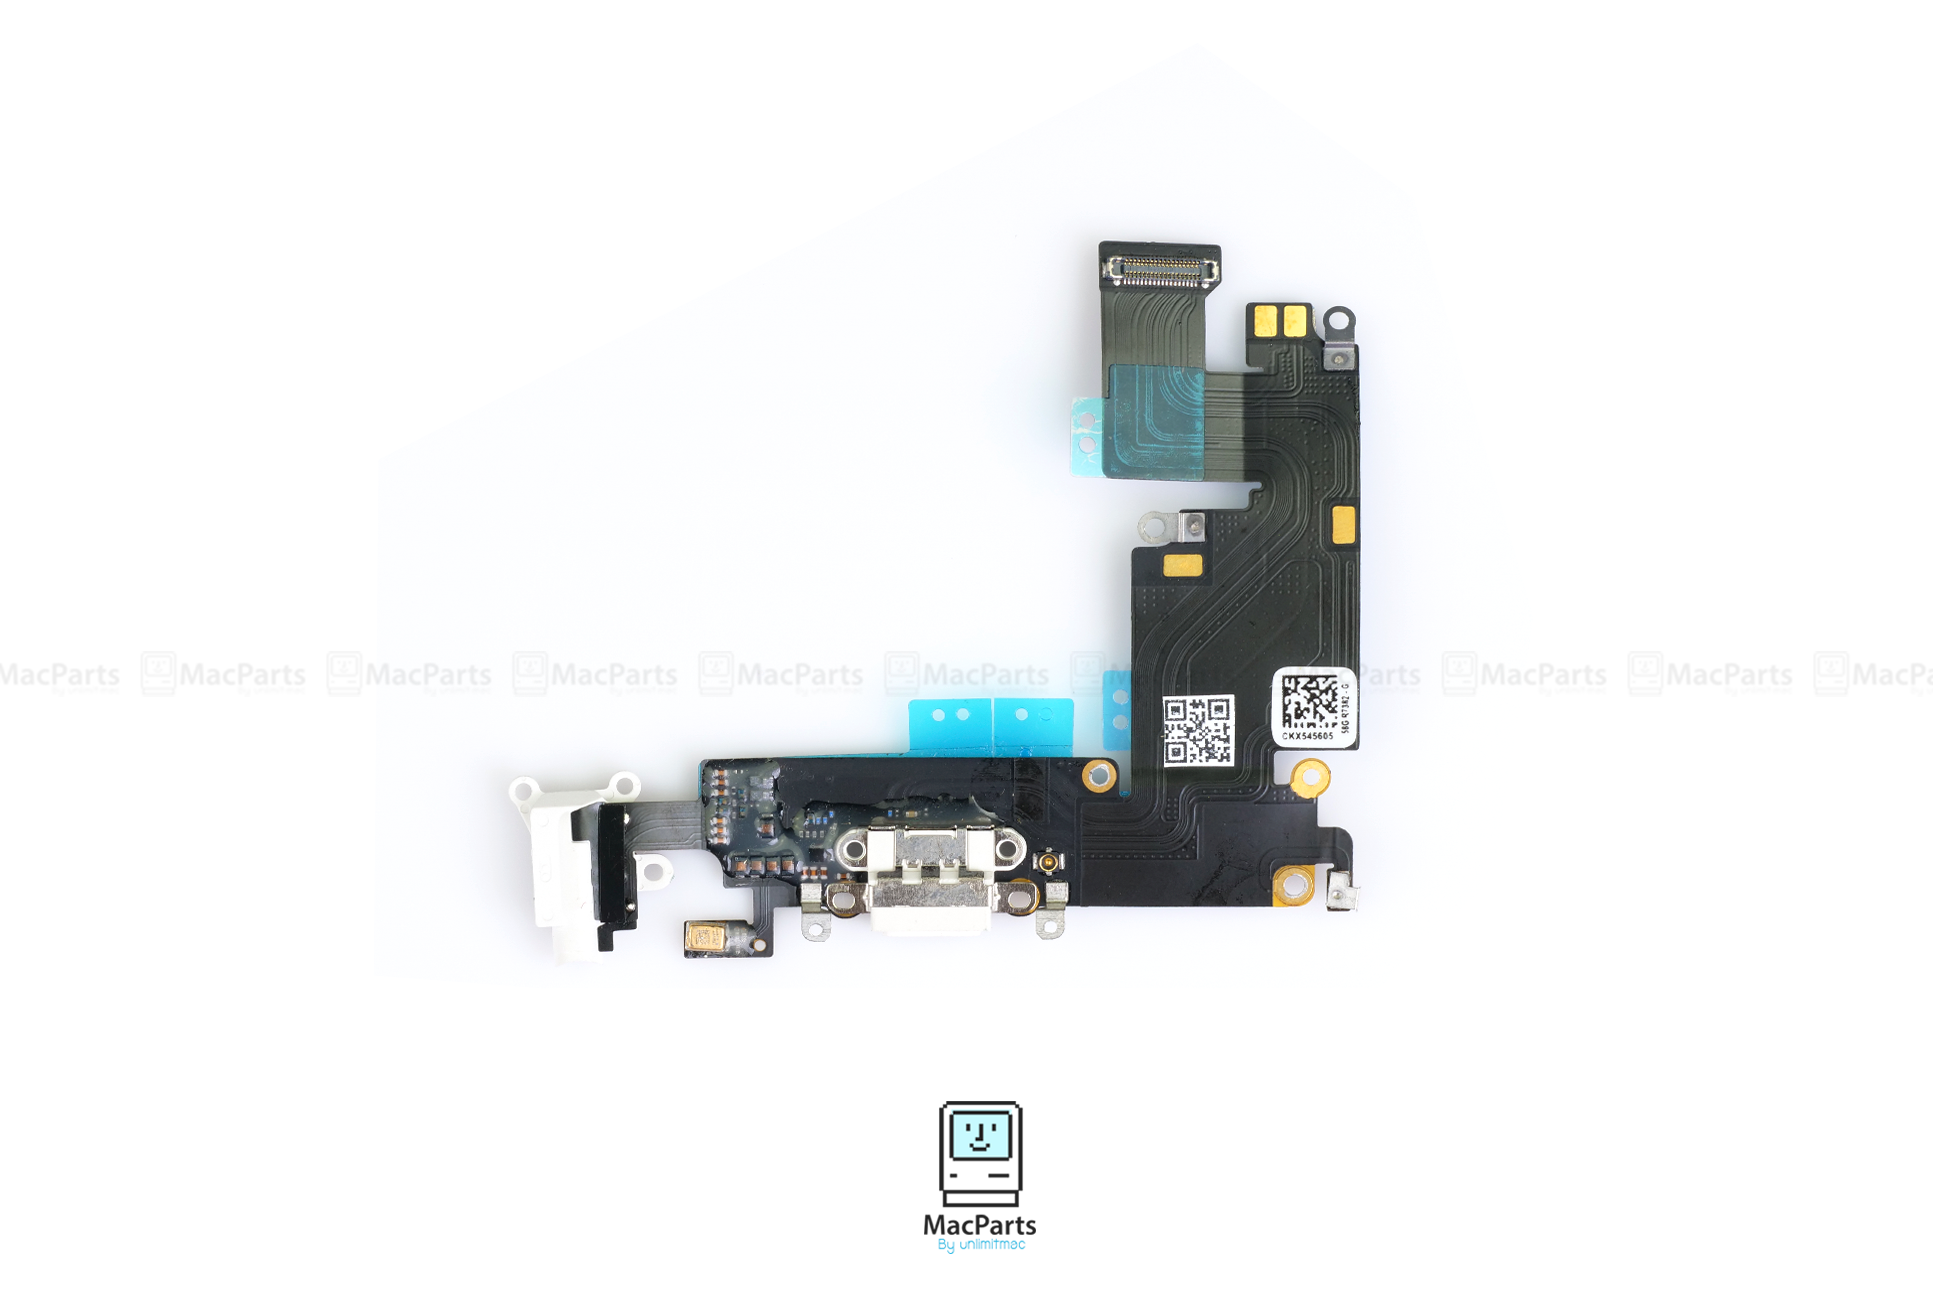 IP-821-2220-A W iPhone 6 Plus Lightning Connector and Headphone Jack White